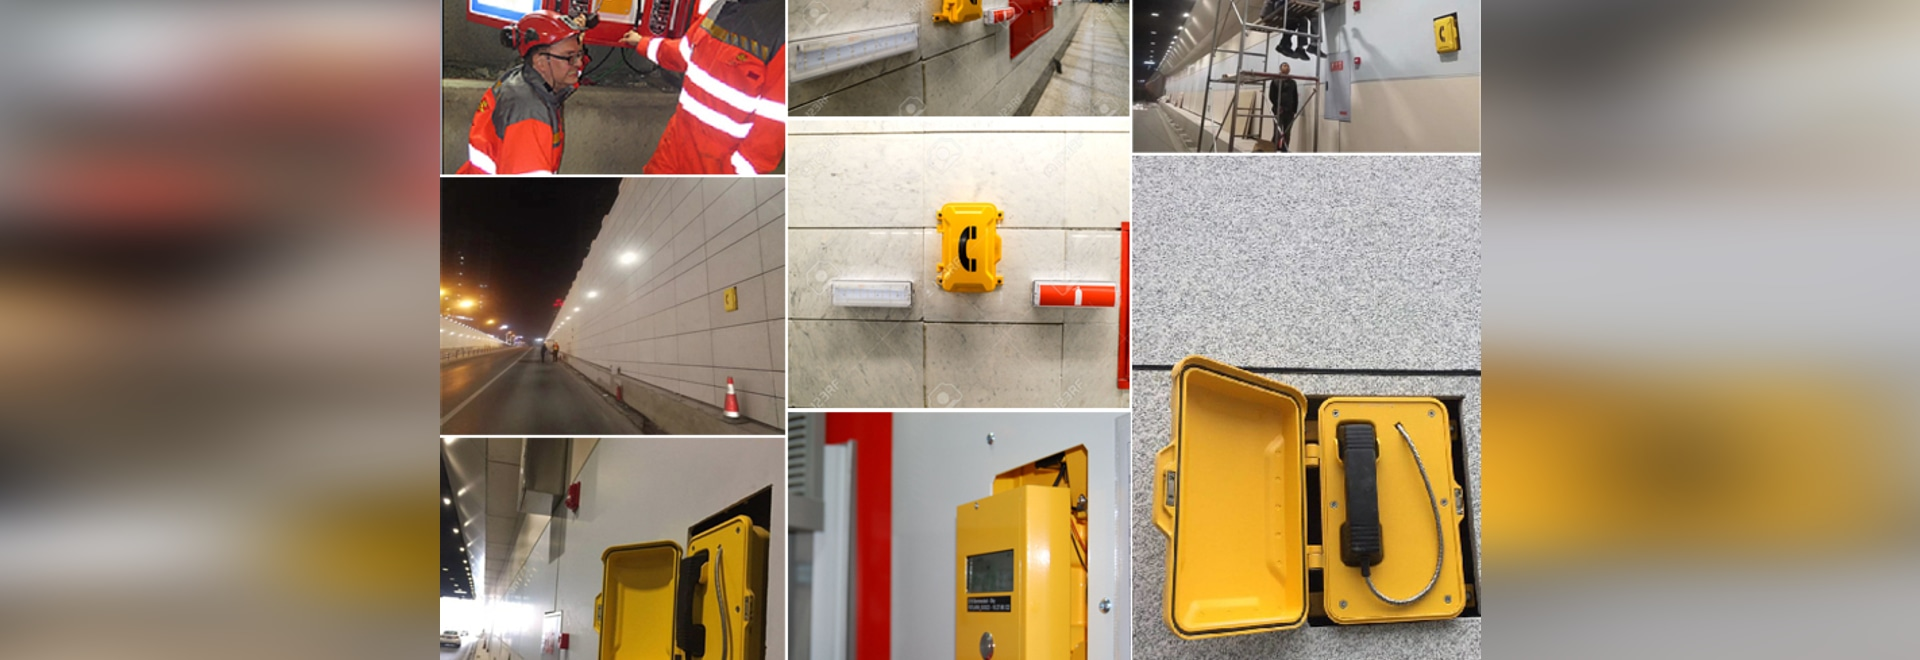 tunnel emergency communication broadcasting system